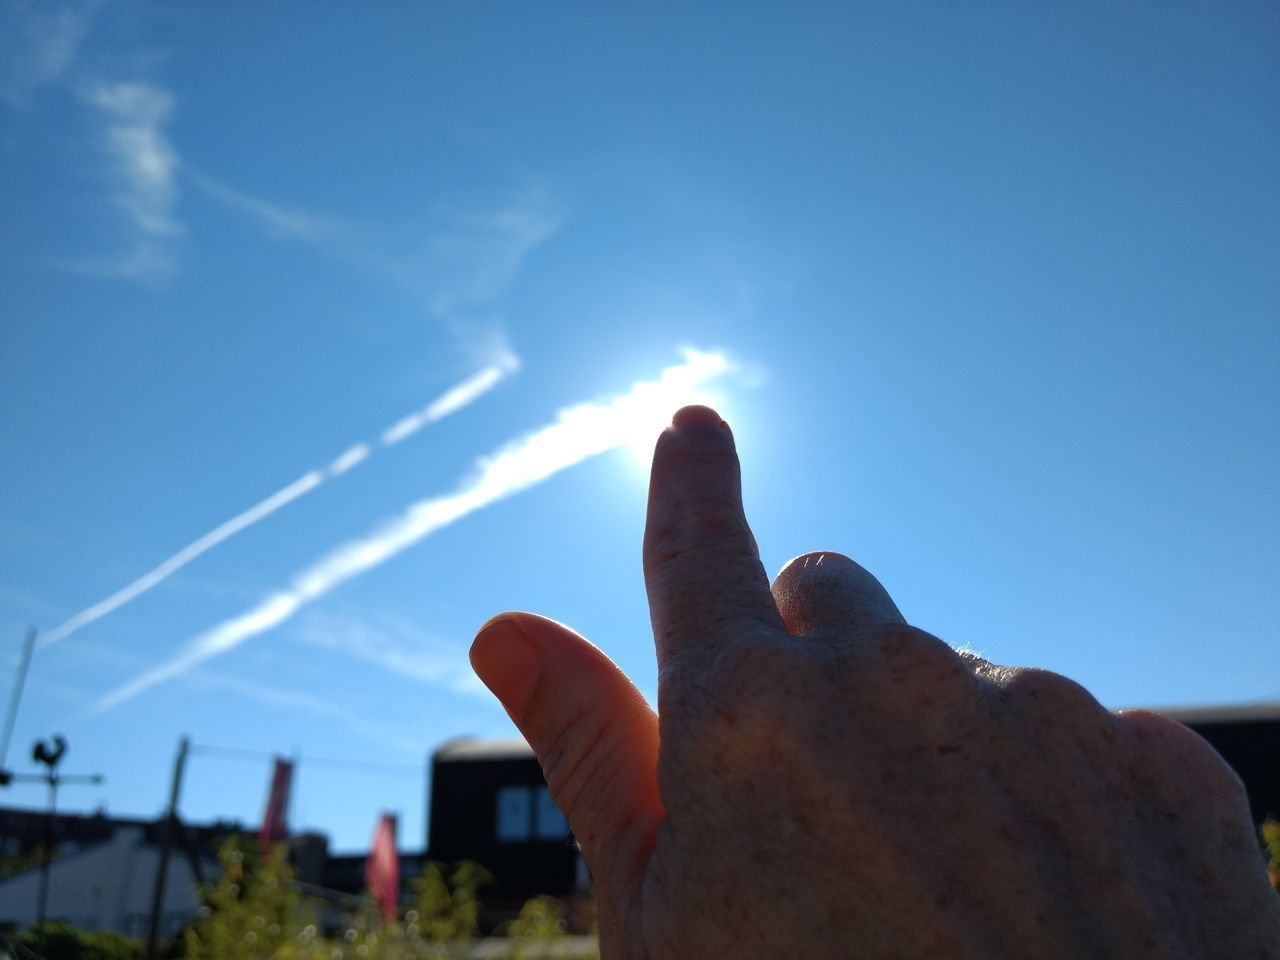 CLOSE-UP OF PERSON HAND AGAINST SKY